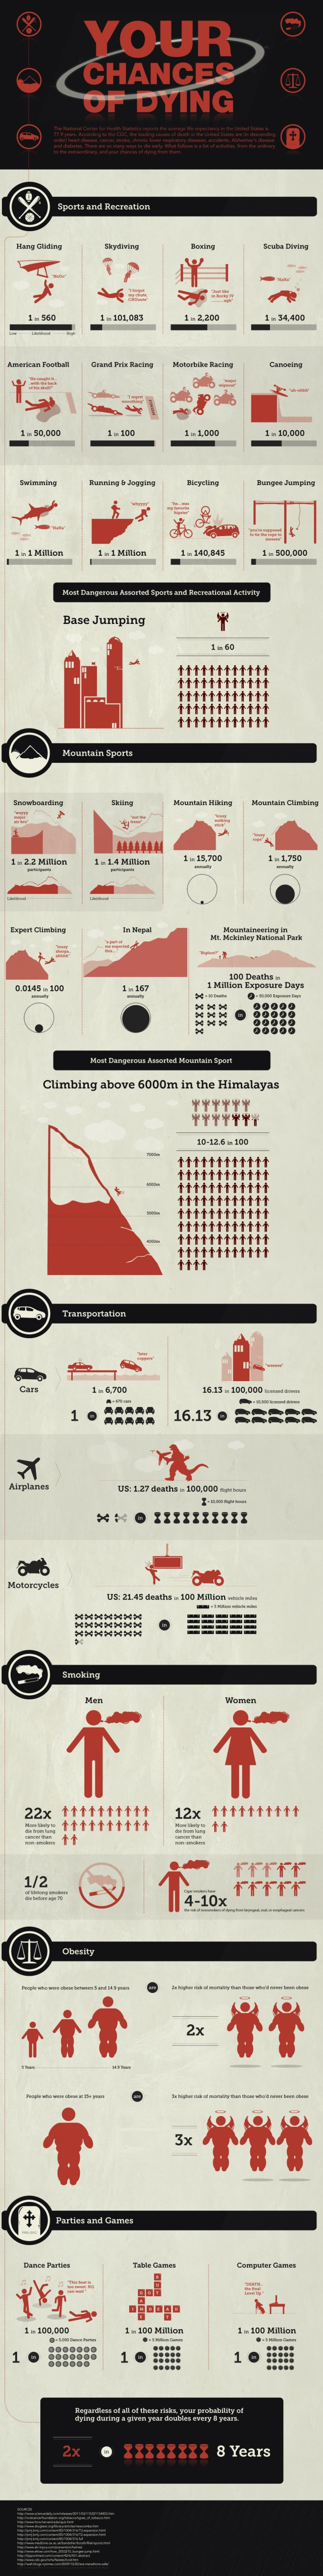 Your Chances Of Dying (infographic)